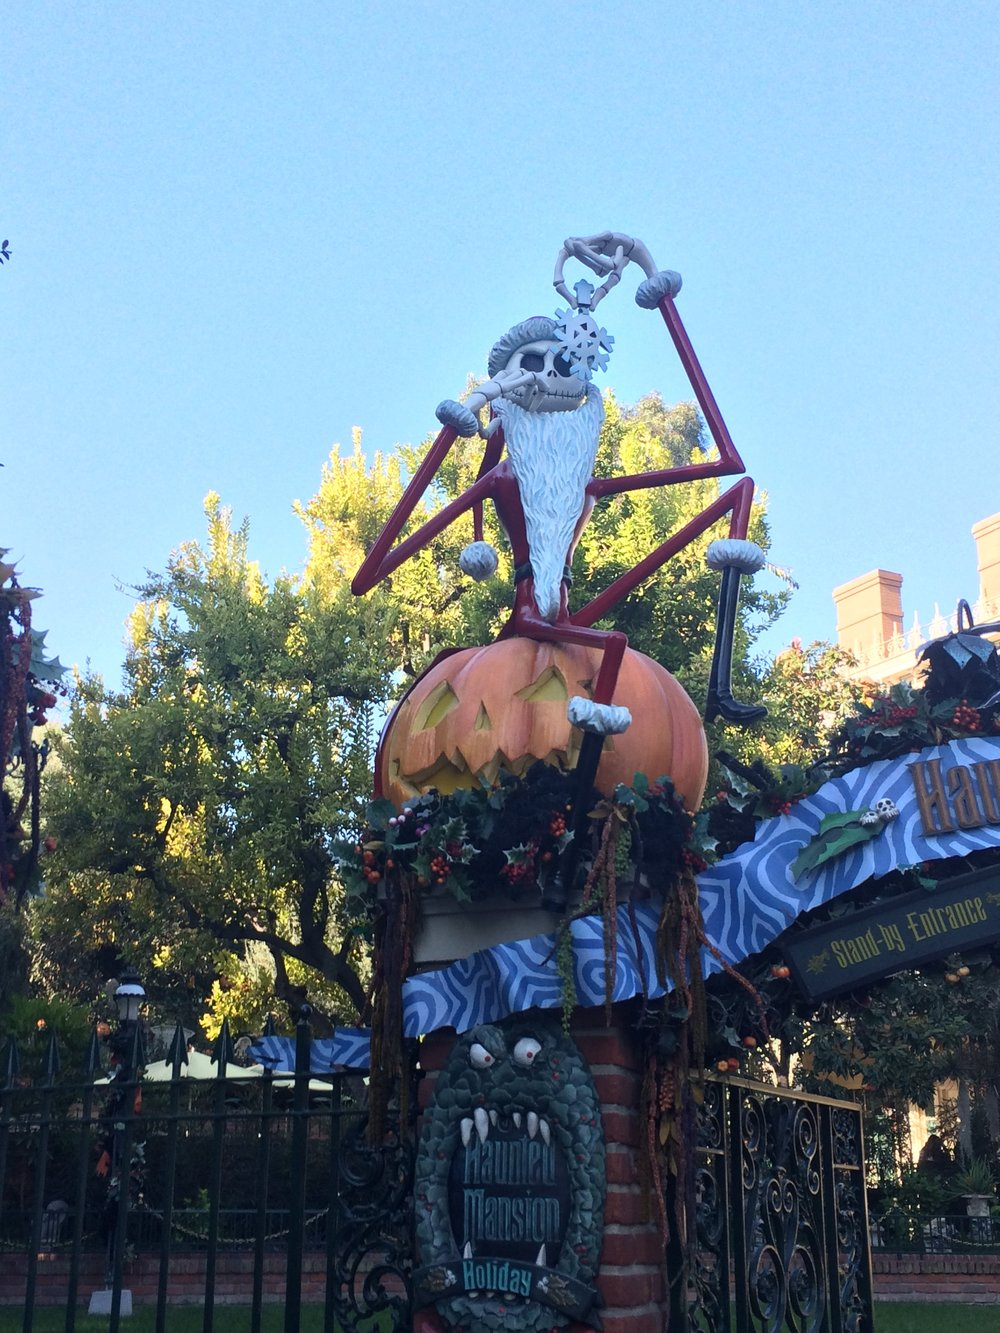 Haunted Mansion a la Nightmare Before Christmas